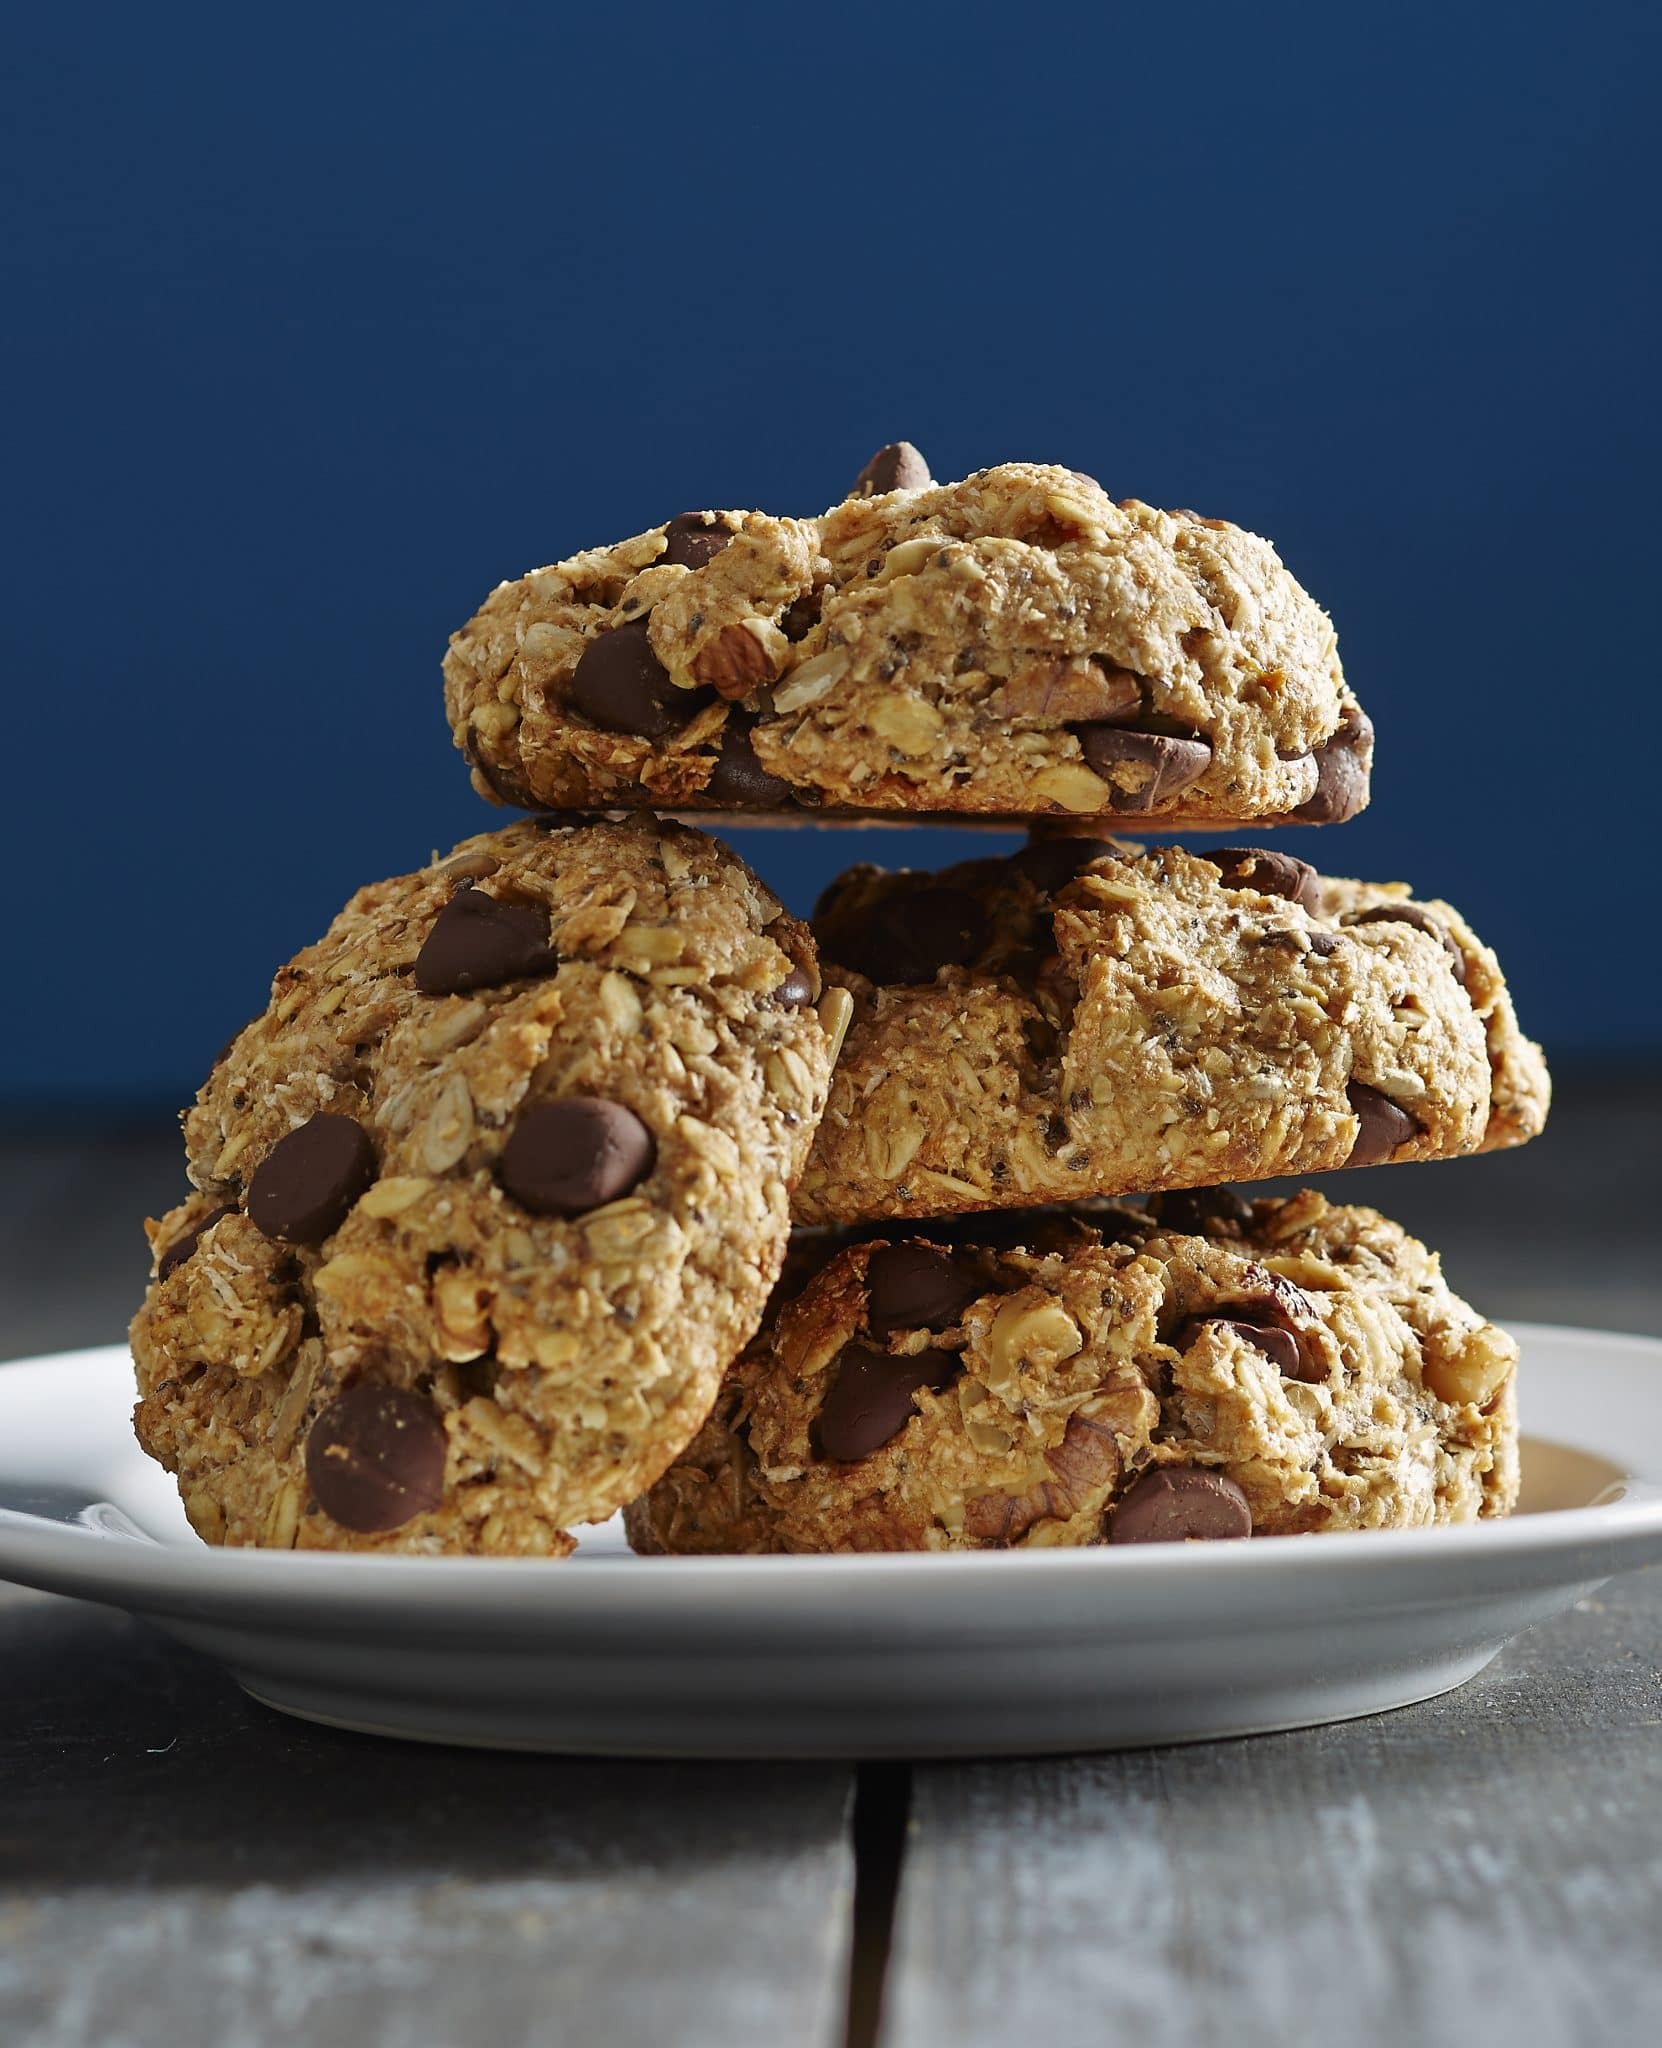 NM Cookbook: Calorie Bomb Cookies